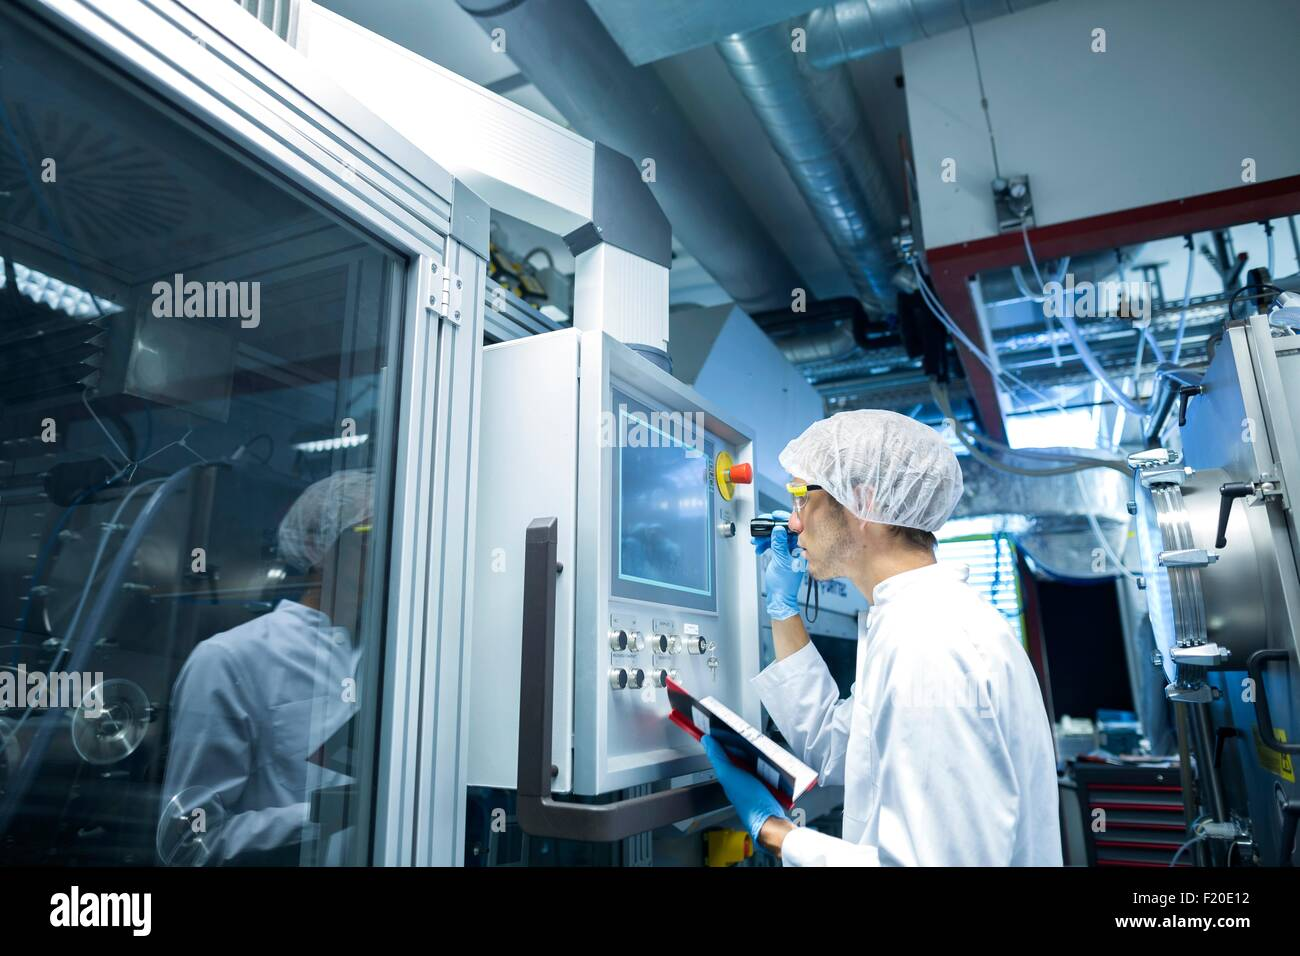 Male scientist with notebook adjusting control panel in lab cleanroom - Stock Image